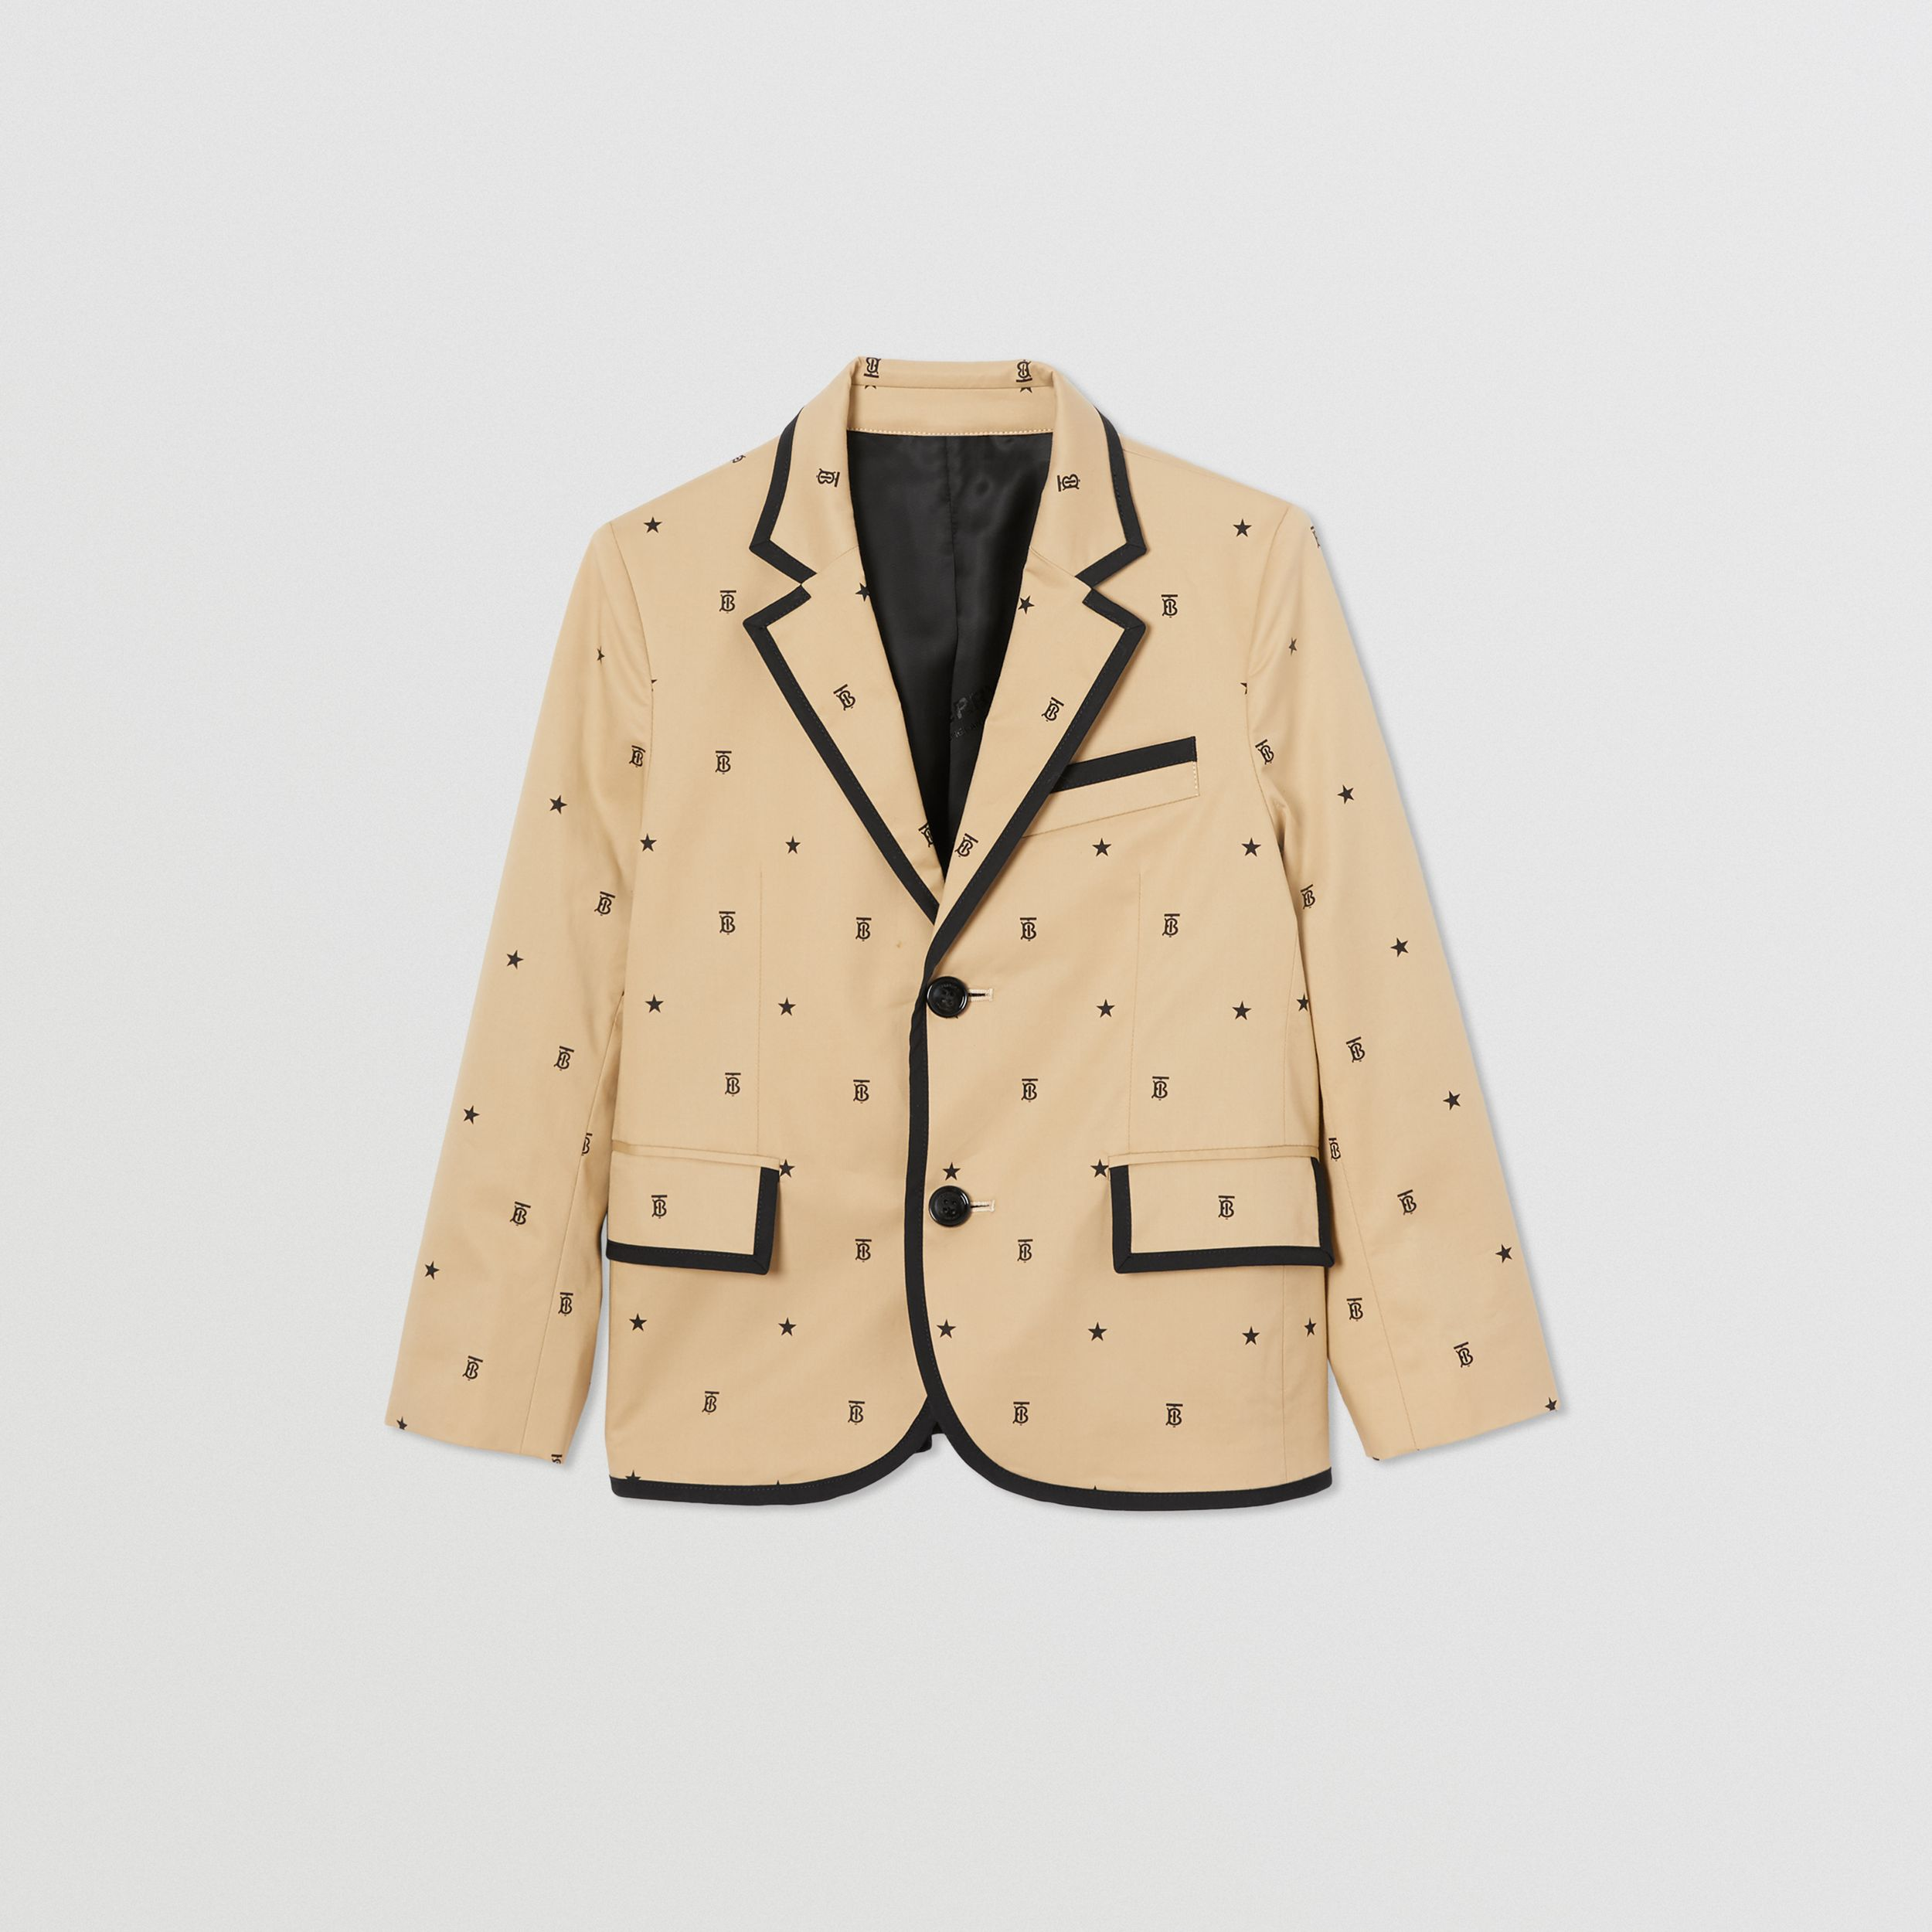 Star and Monogram Motif Stretch Cotton Blazer in Sand | Burberry United Kingdom - 1